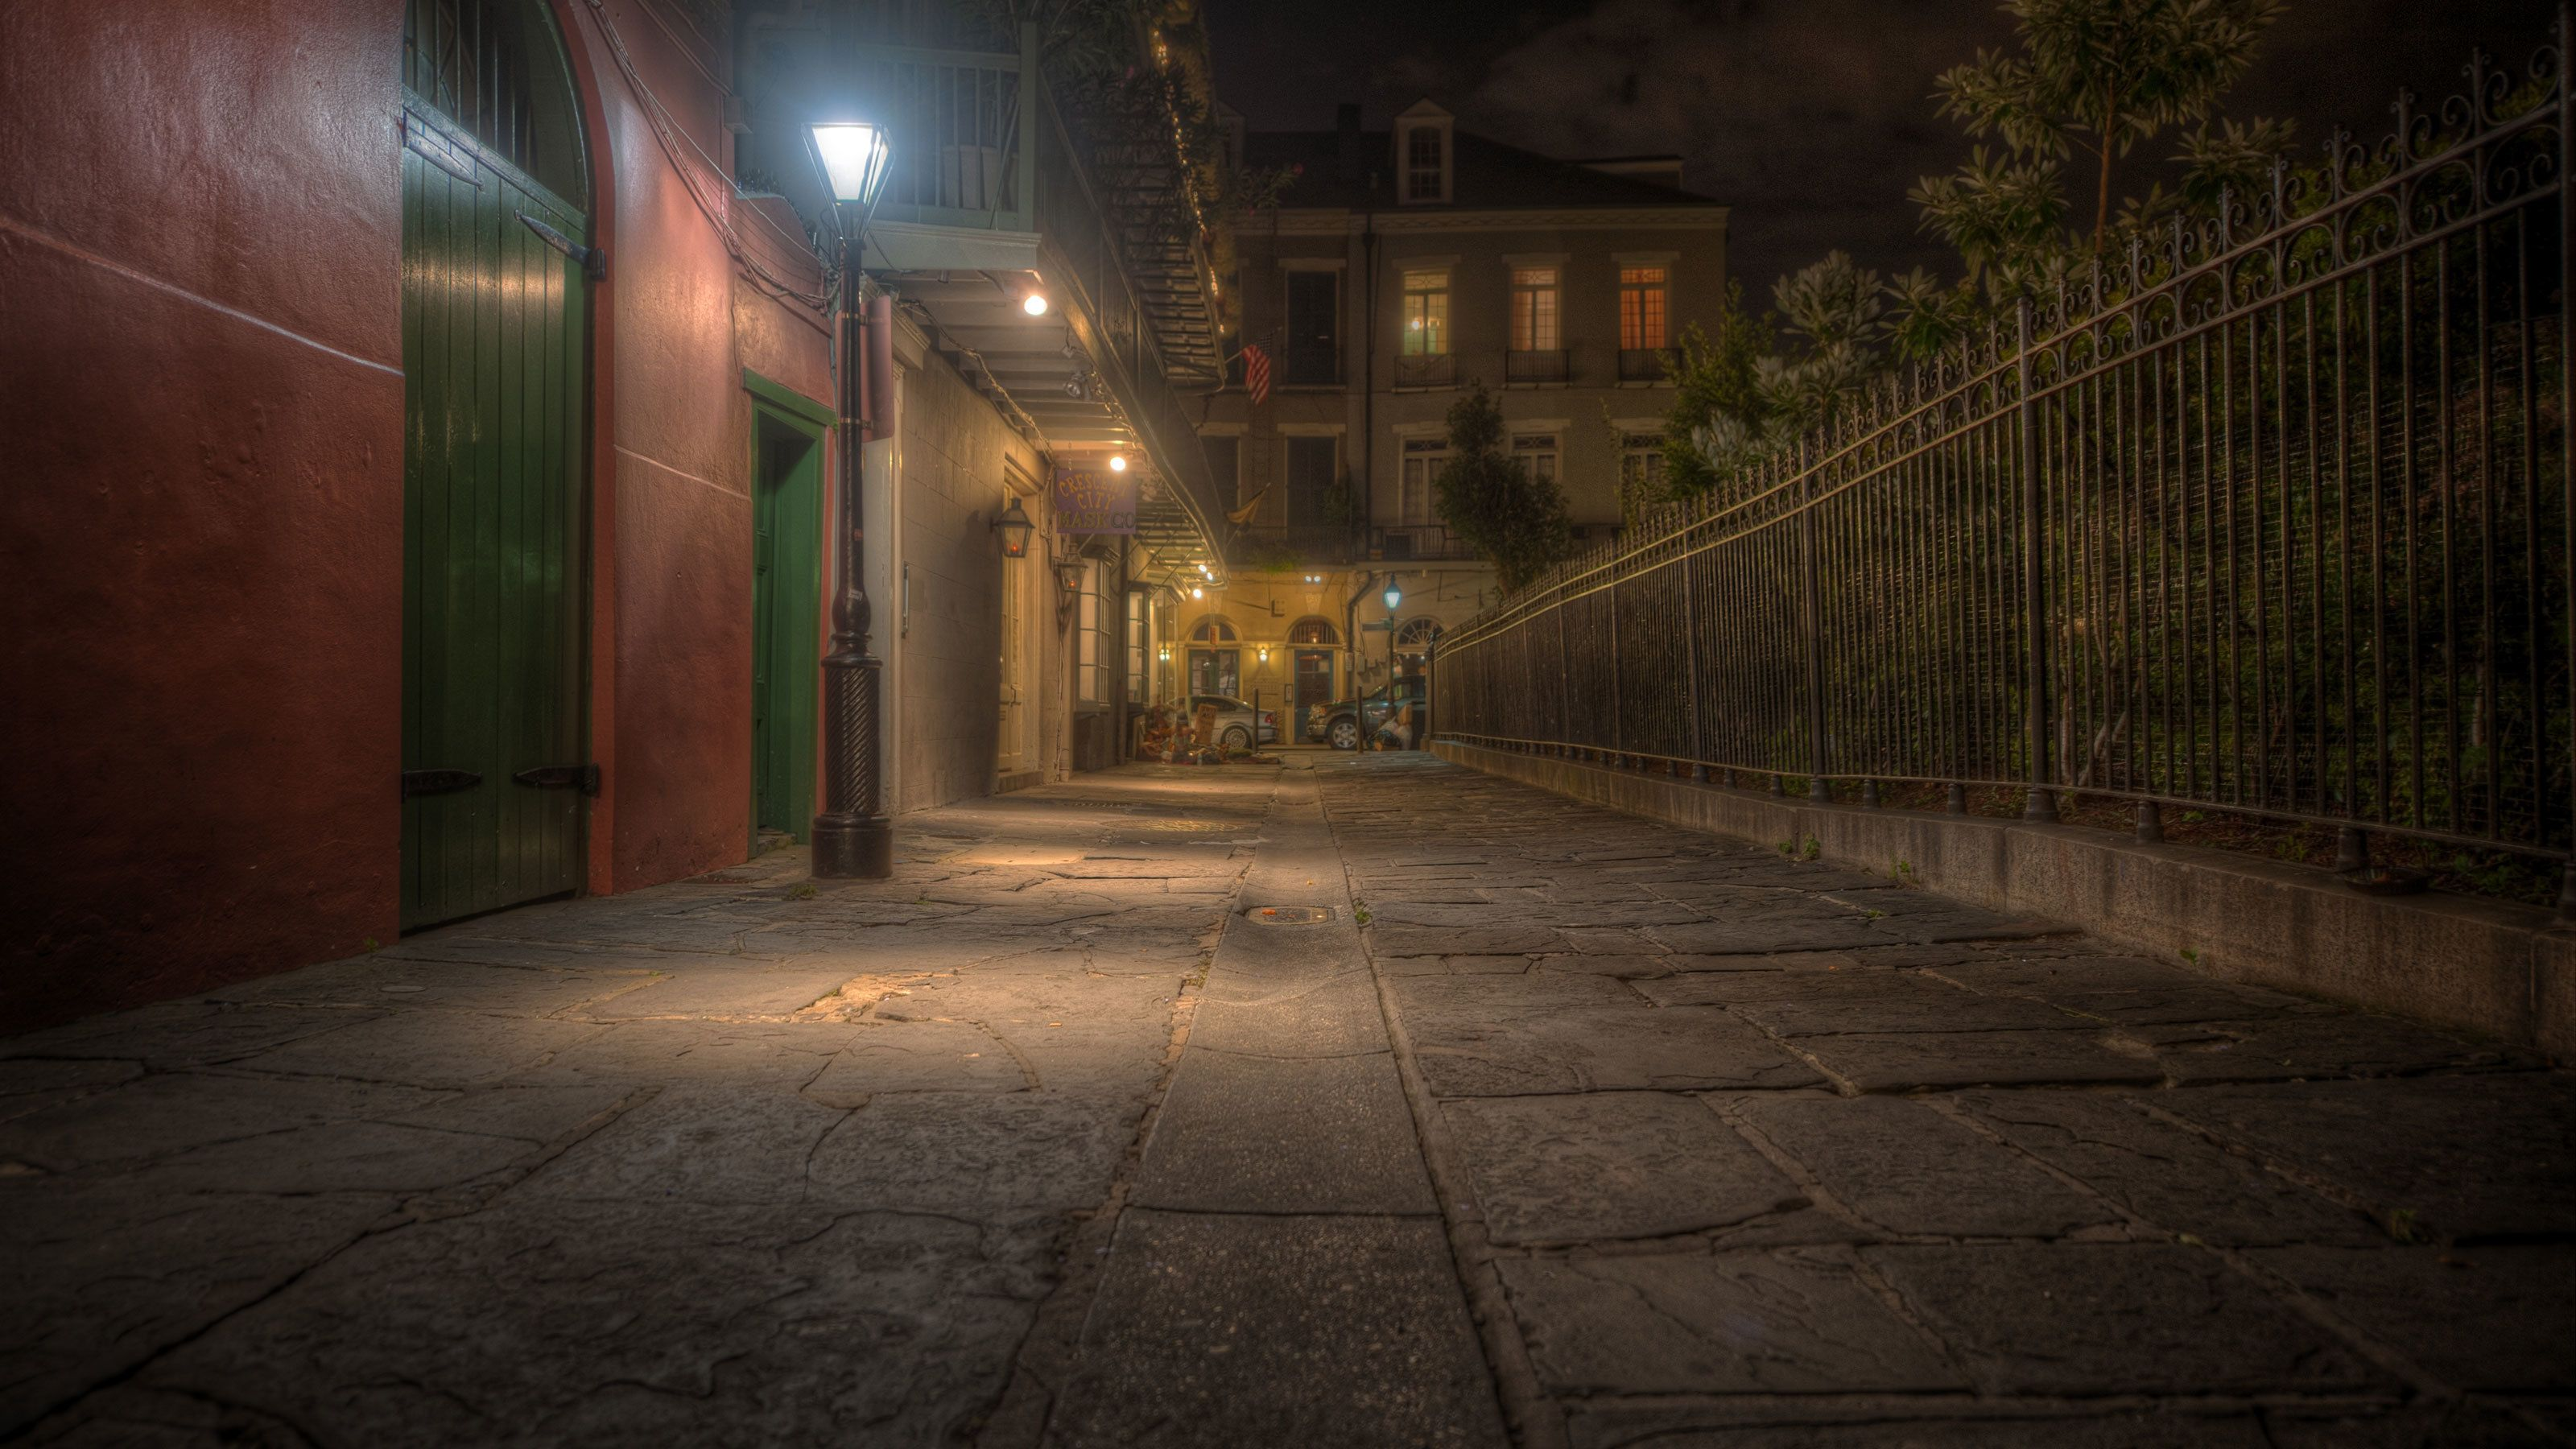 Pirates Alley, the start point of the Ghost City Tour in New Orleans.